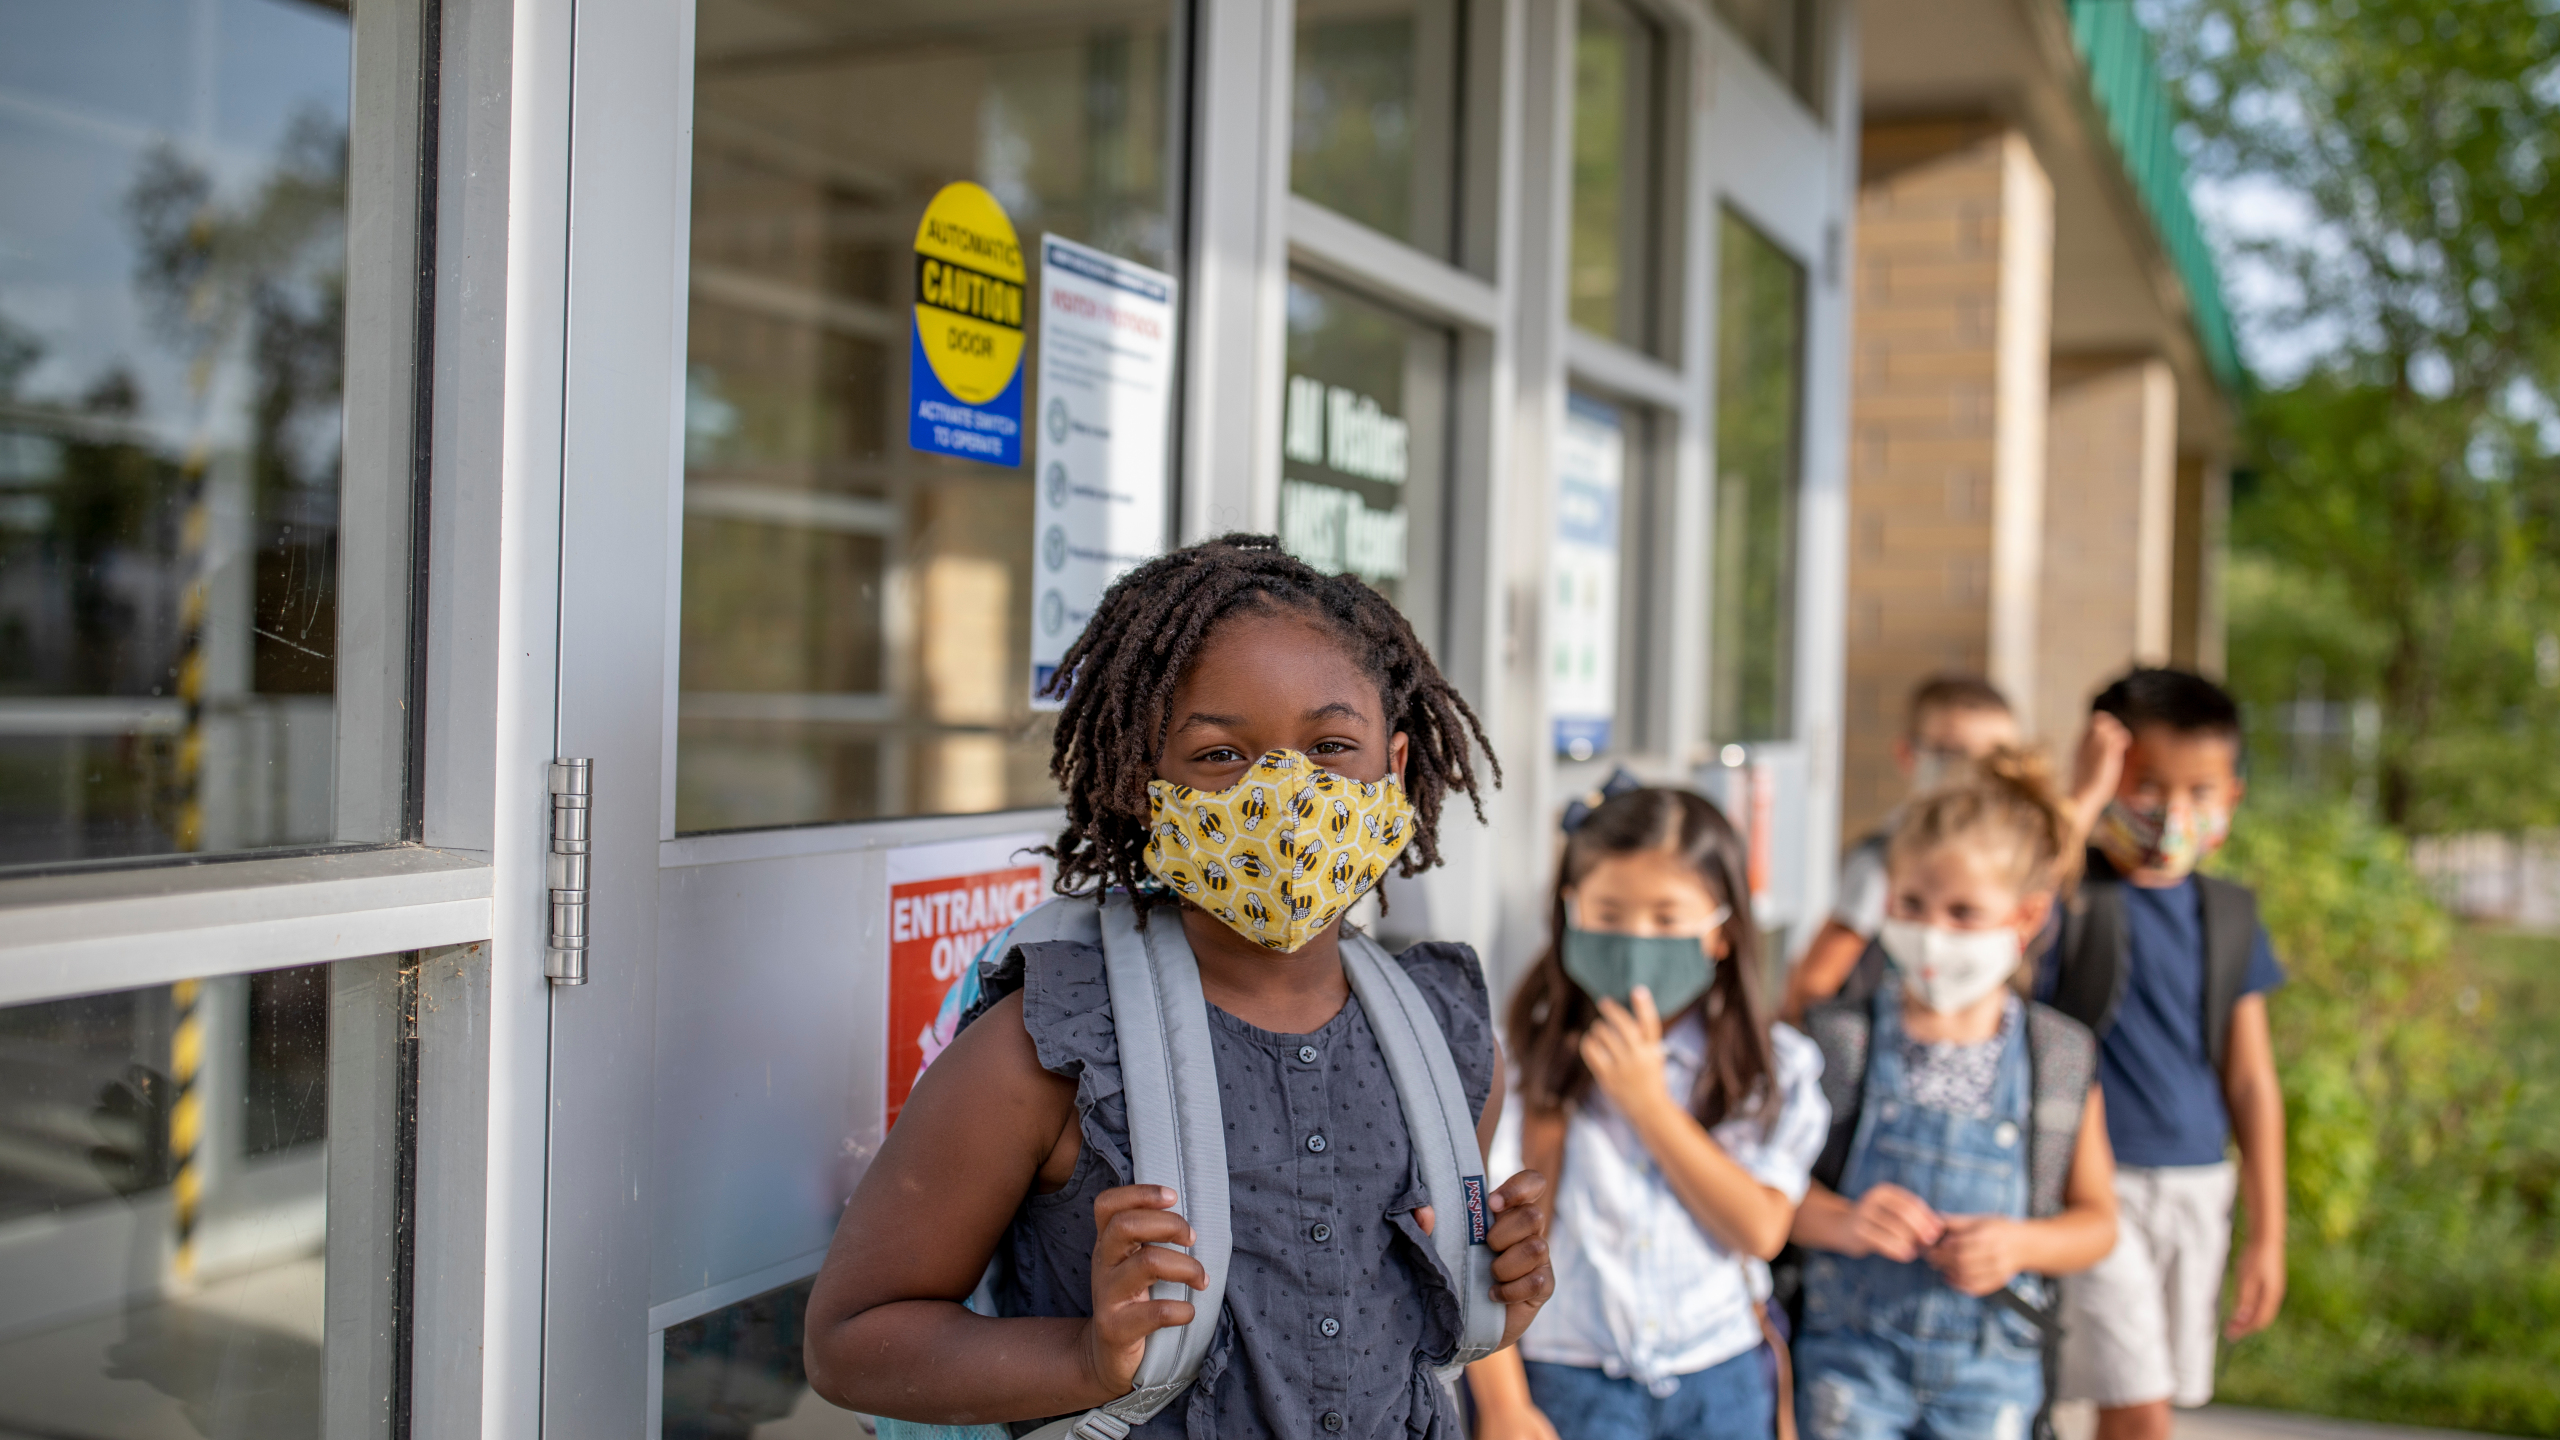 81 schools in Illinois reporting COVID-19 outbreaks